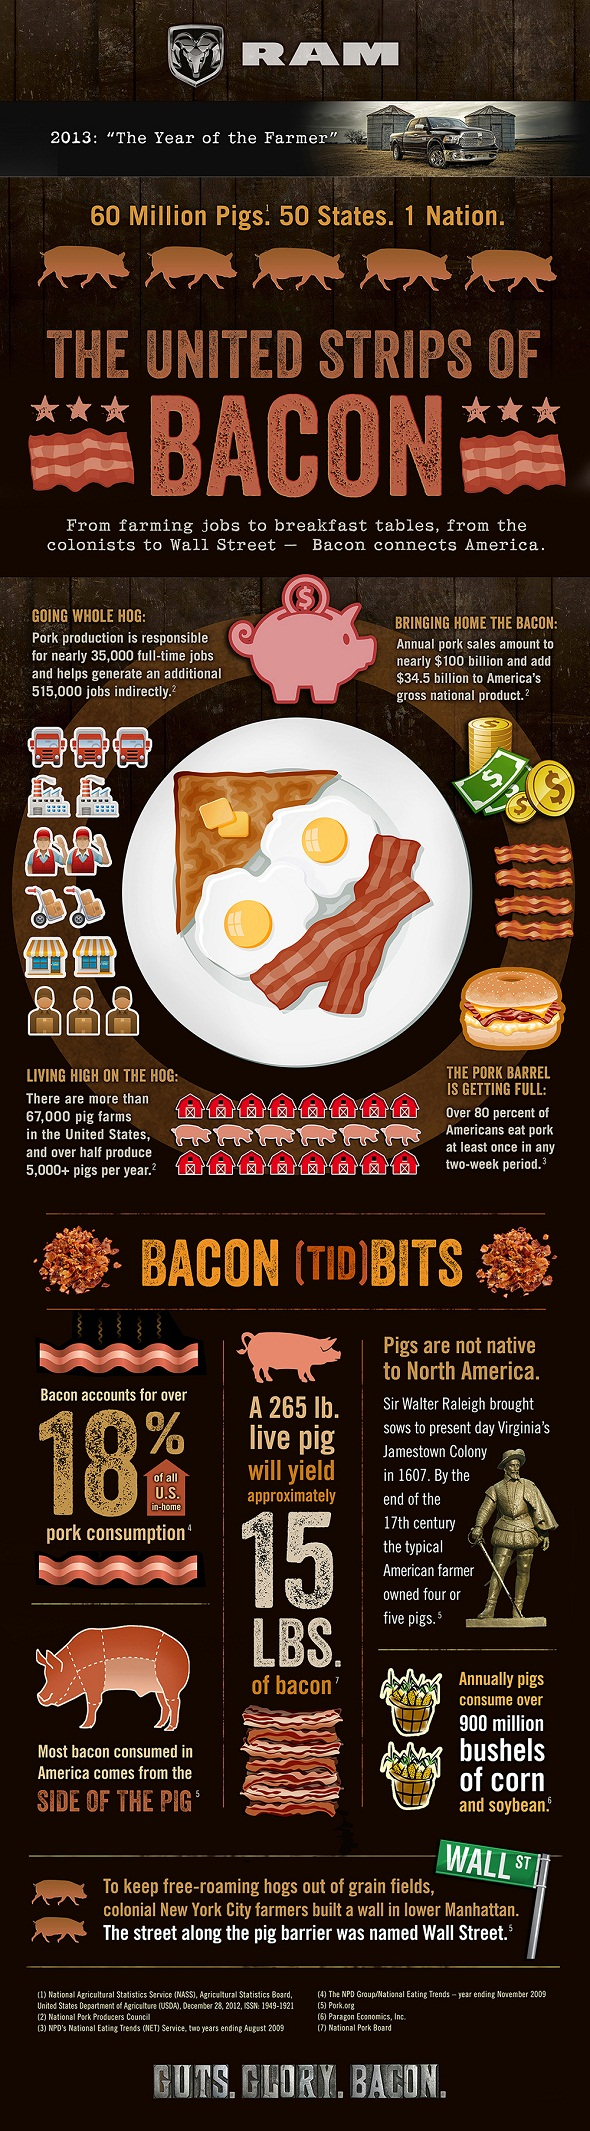 Ram-Trucks-United-Strips-of-Bacon-Infographic